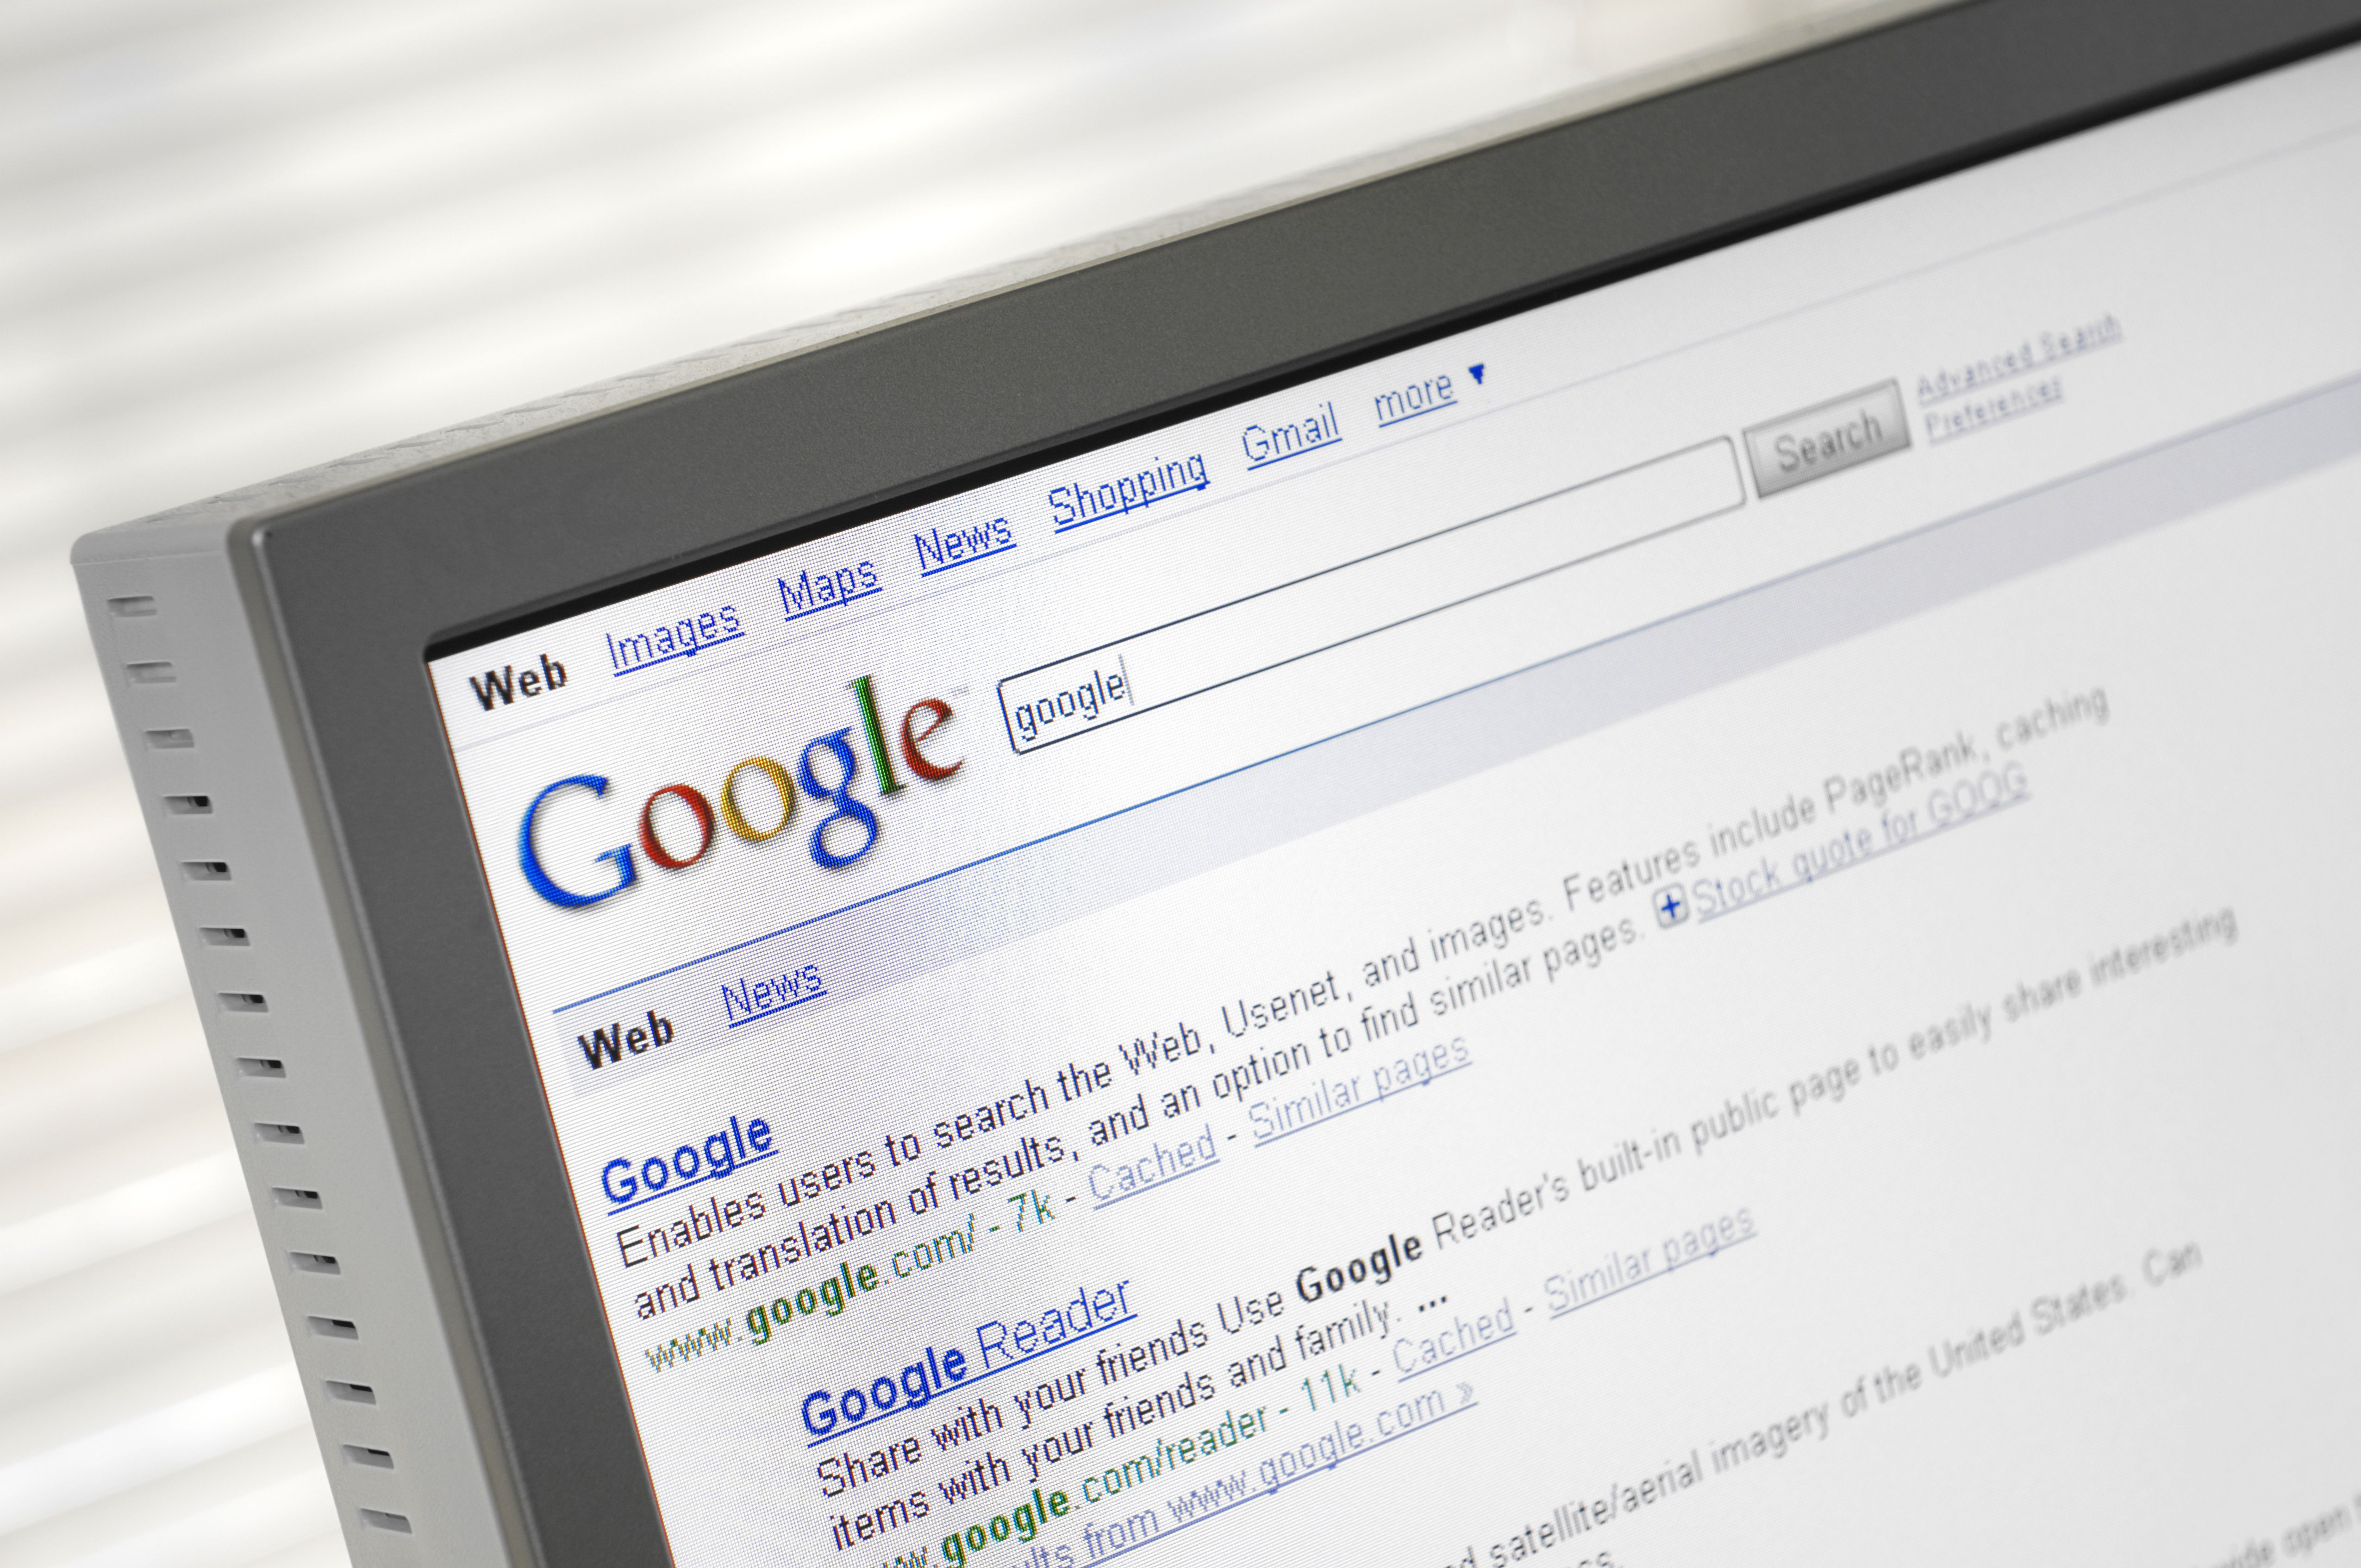 Google search engine page with search results displayed on a computer monitor.